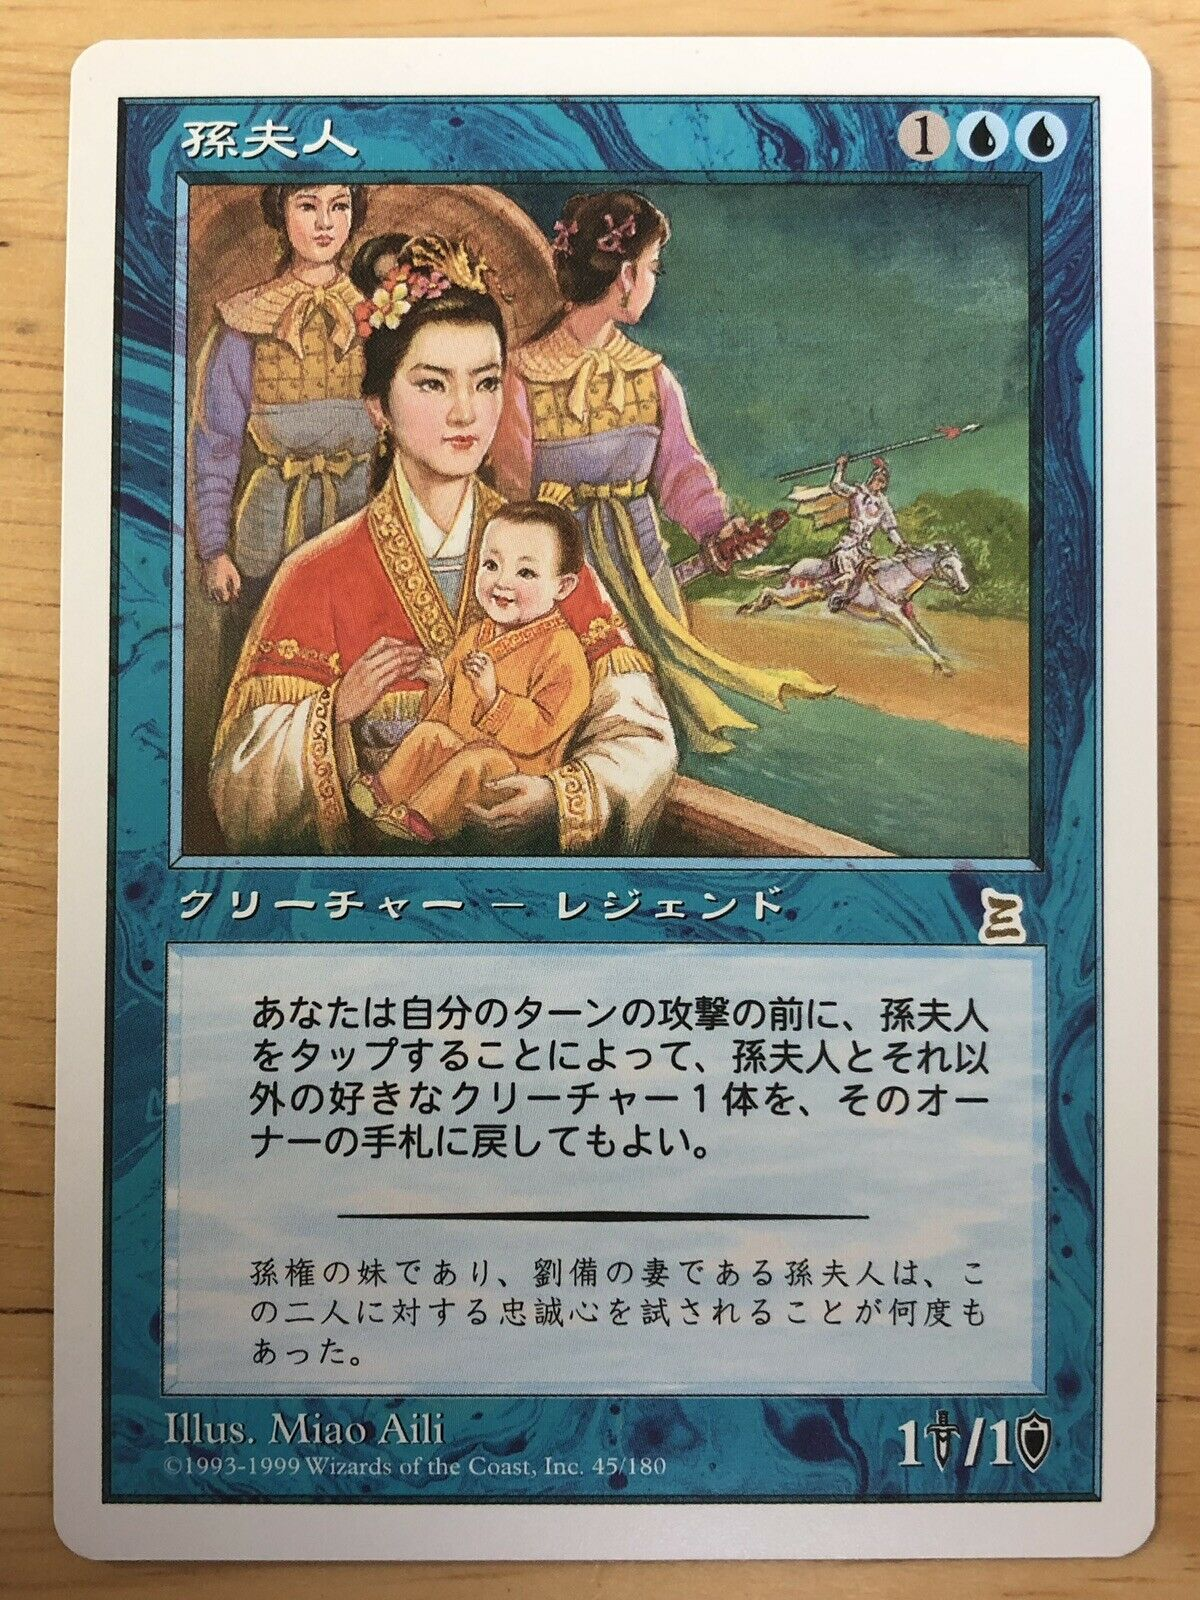 Lady Sun Japanese Portal Three Kingdoms P3K mtg NM